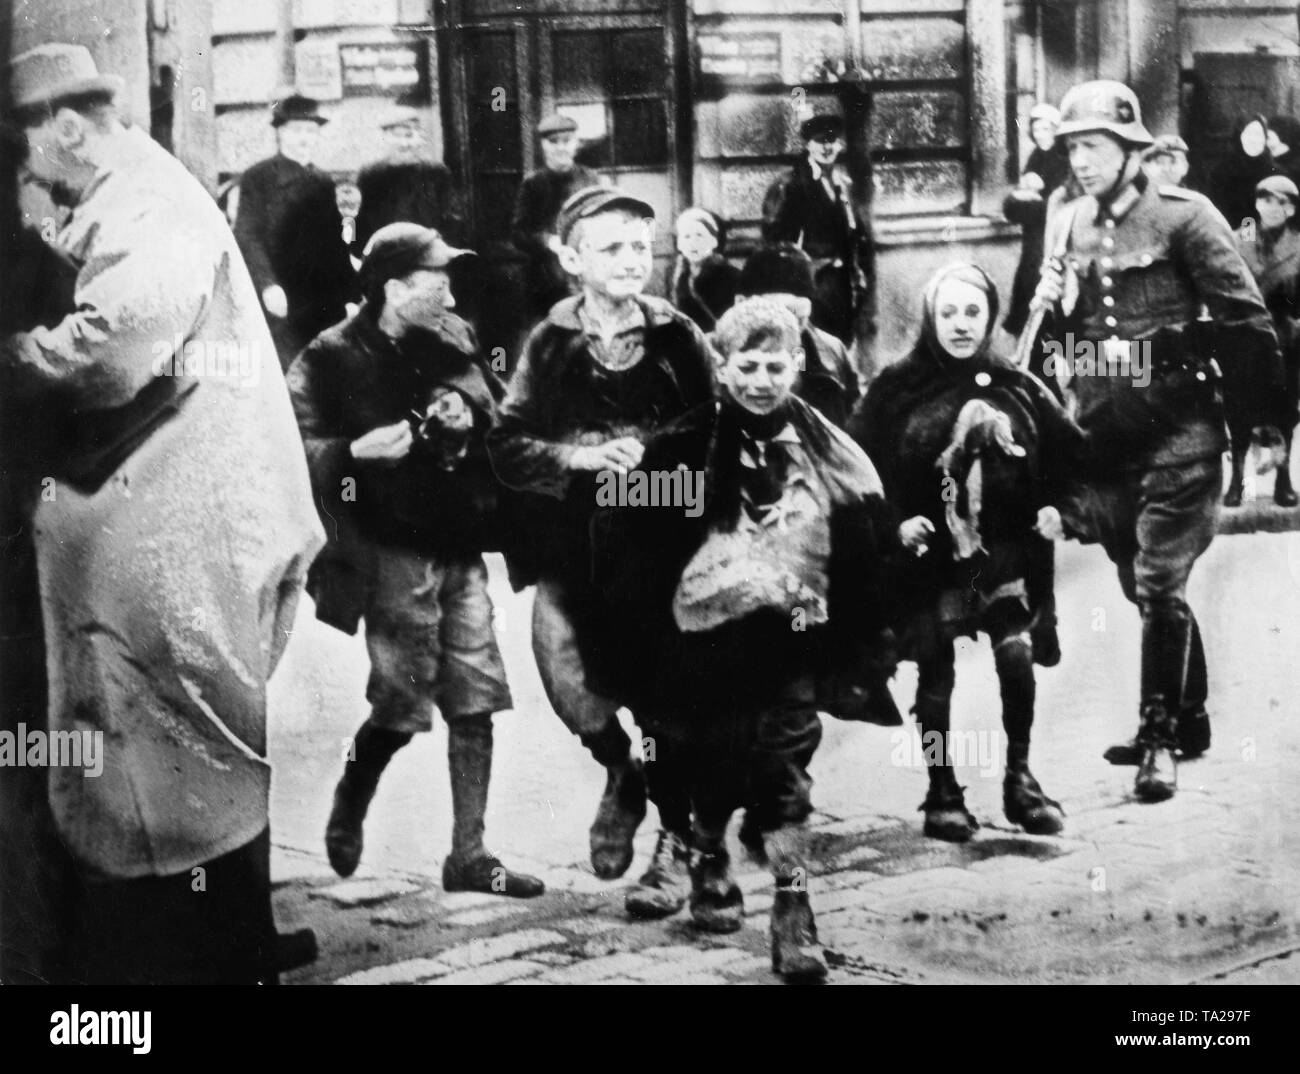 A police officer arrests children who are alleged to have smuggled food into the ghetto - Stock Image